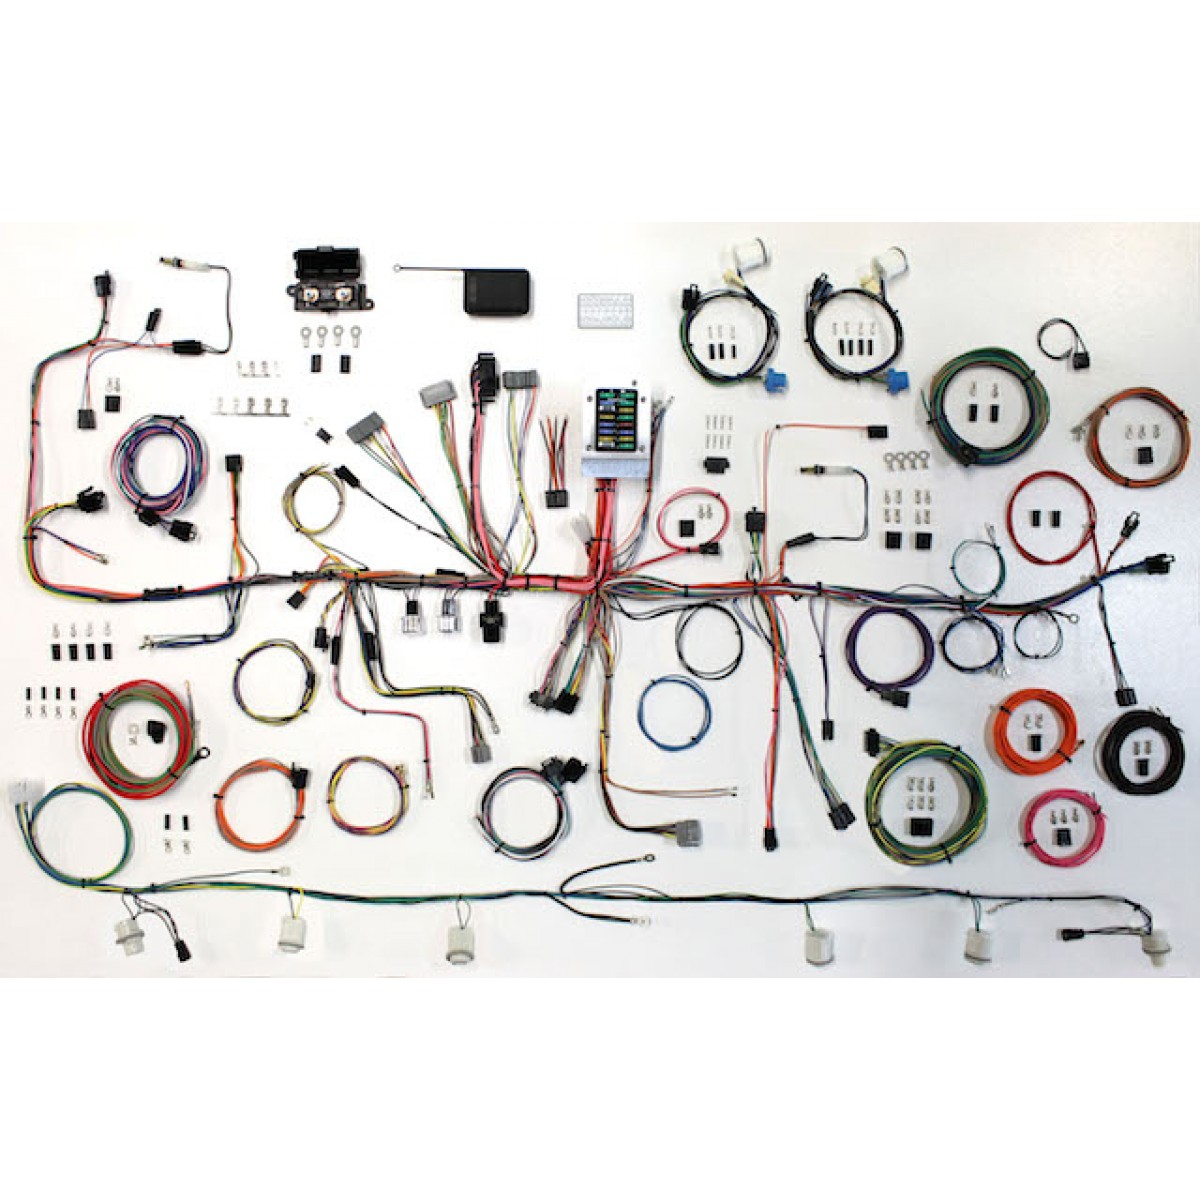 complete wiring harness kit 1987 1989 ford mustang part 510547 rh code510 com